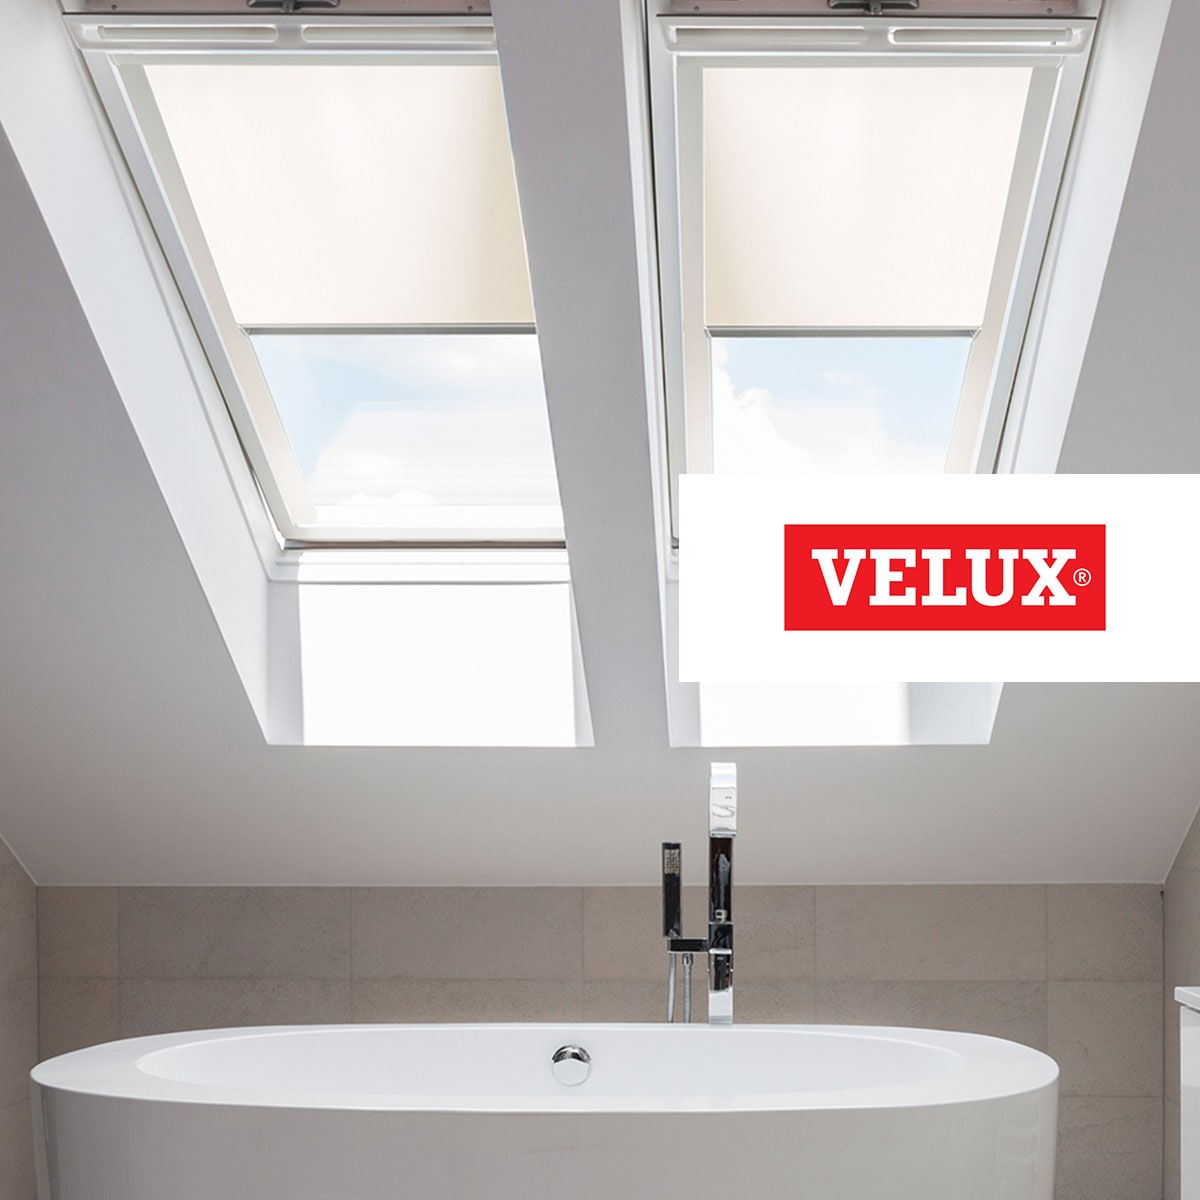 Velux reparieren velux reparieren with velux reparieren for Fenster reparieren